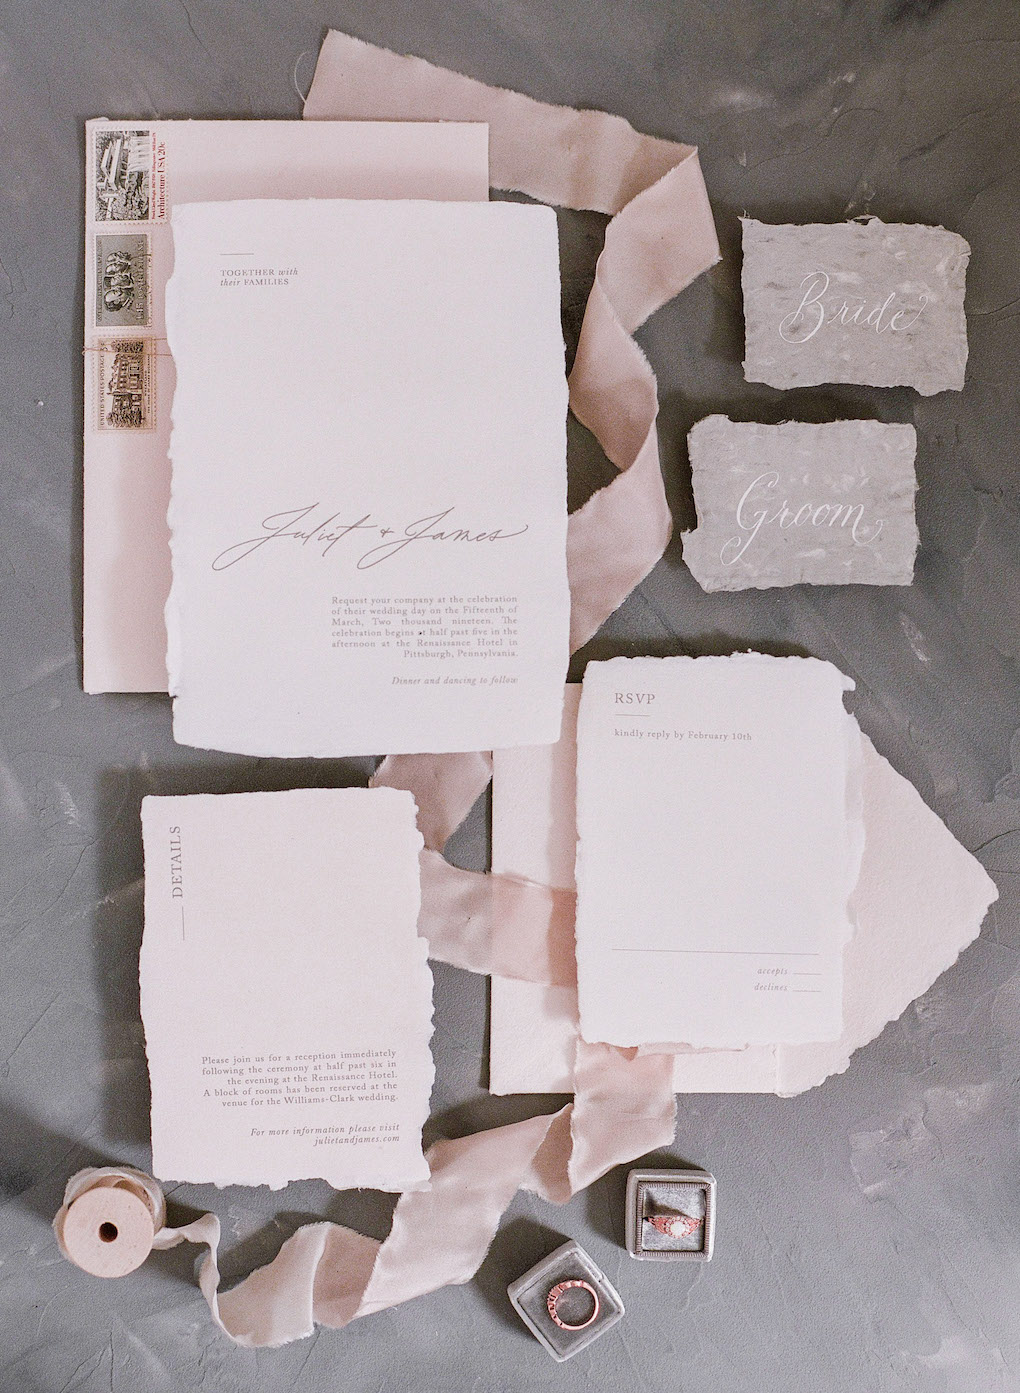 Blush and White Wedding Invitation Suite: Soft and Subtle Palettes of Spring Blossoms | Editorial Shoot at The Renaissance Pittsburgh by Exhale Events. See more inspiration at exhale-events.com!